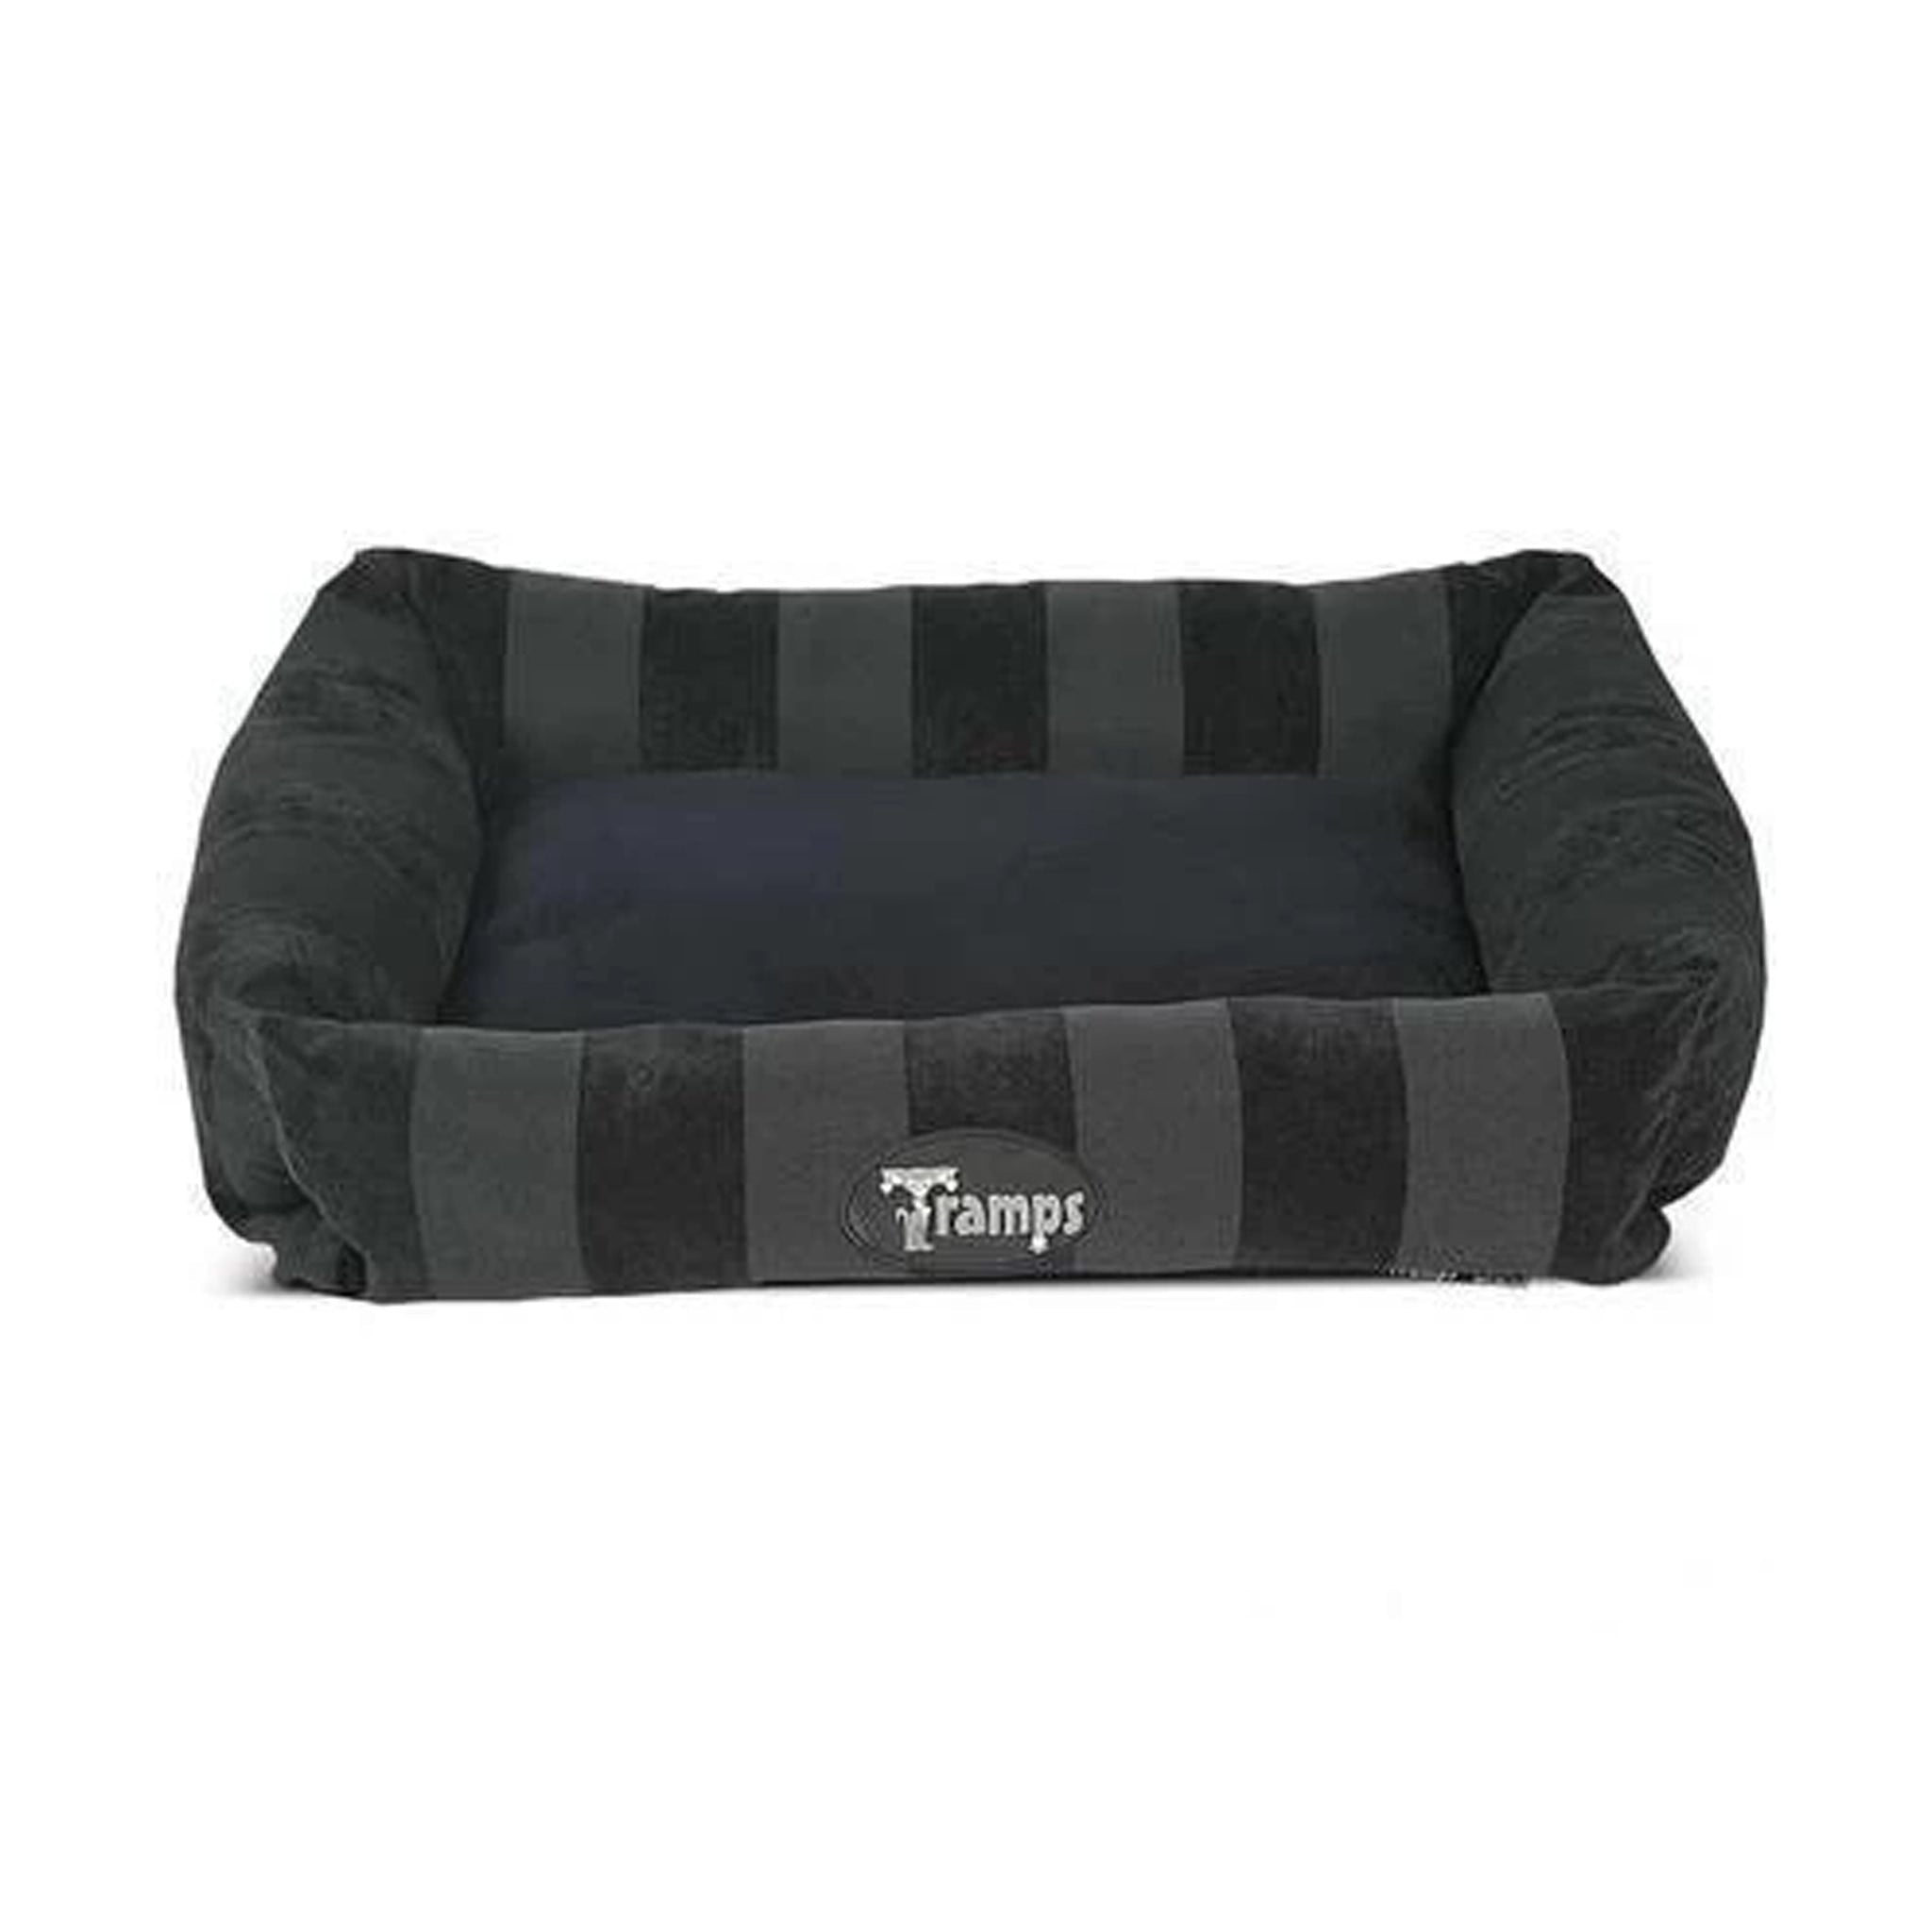 Tramps AristoCat Lounger Cat Bed - comfypet